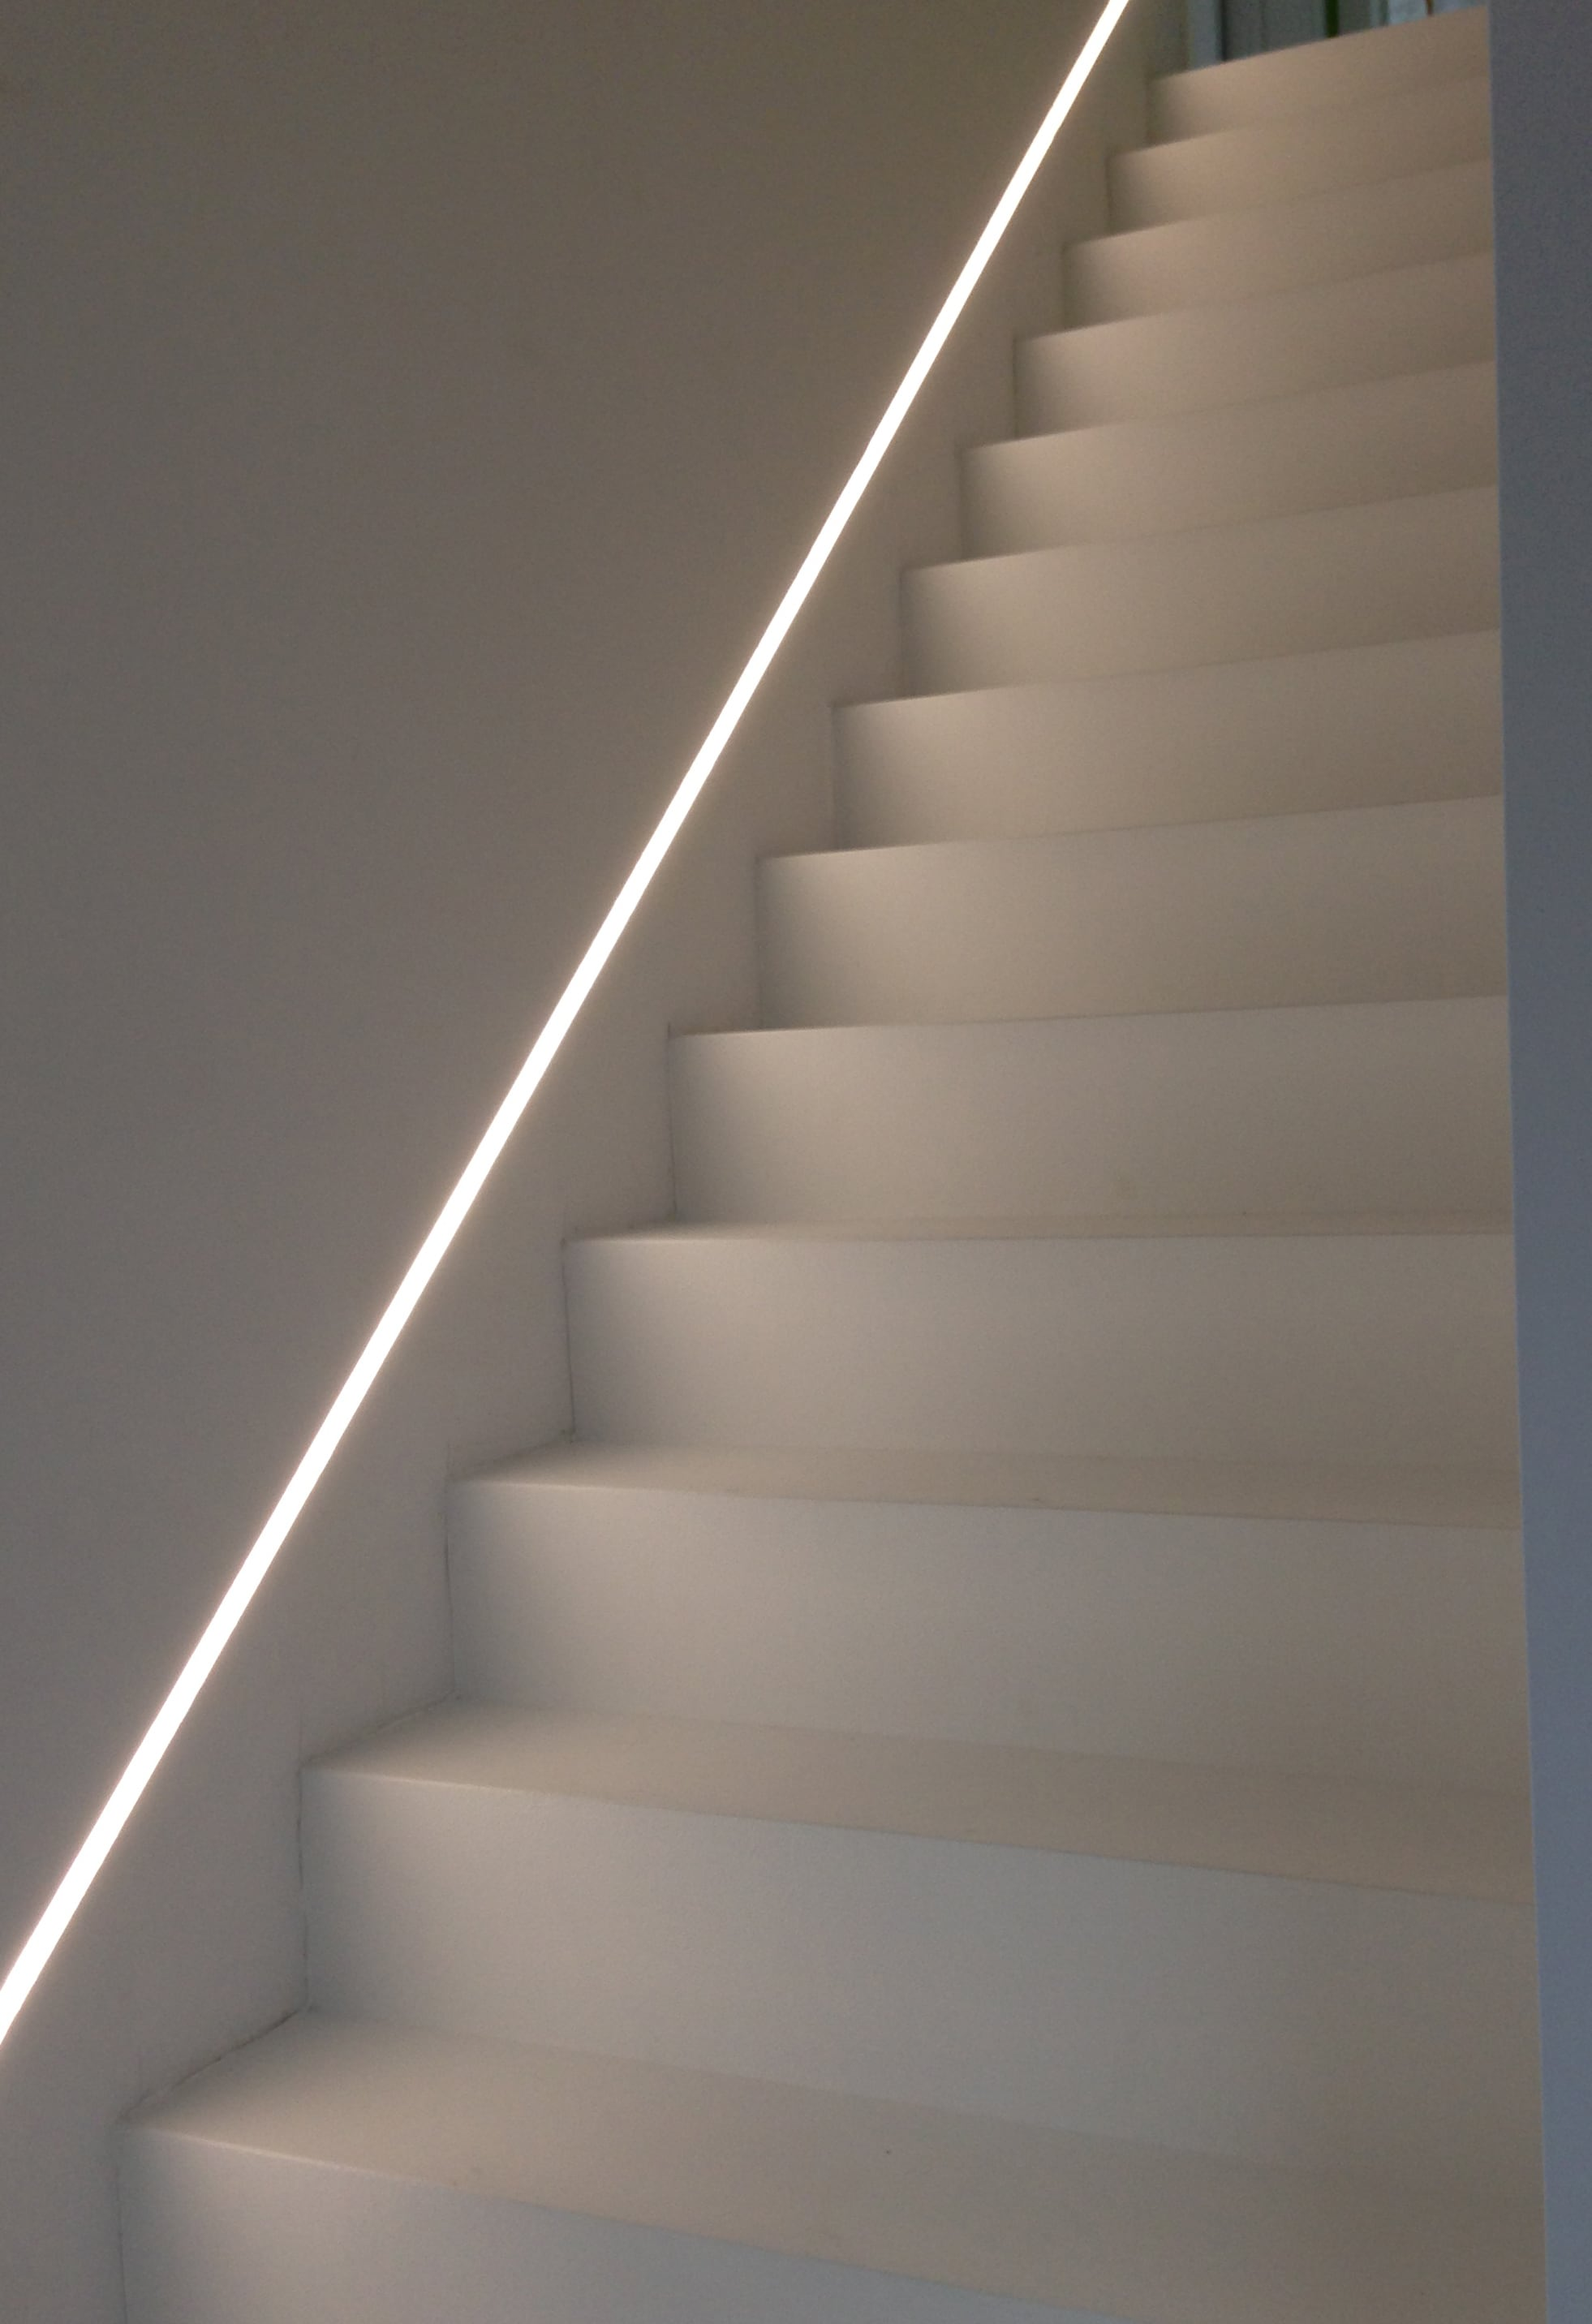 eclairage led escalier interieur interesting eclairage marche escalier interieur eclairage led. Black Bedroom Furniture Sets. Home Design Ideas